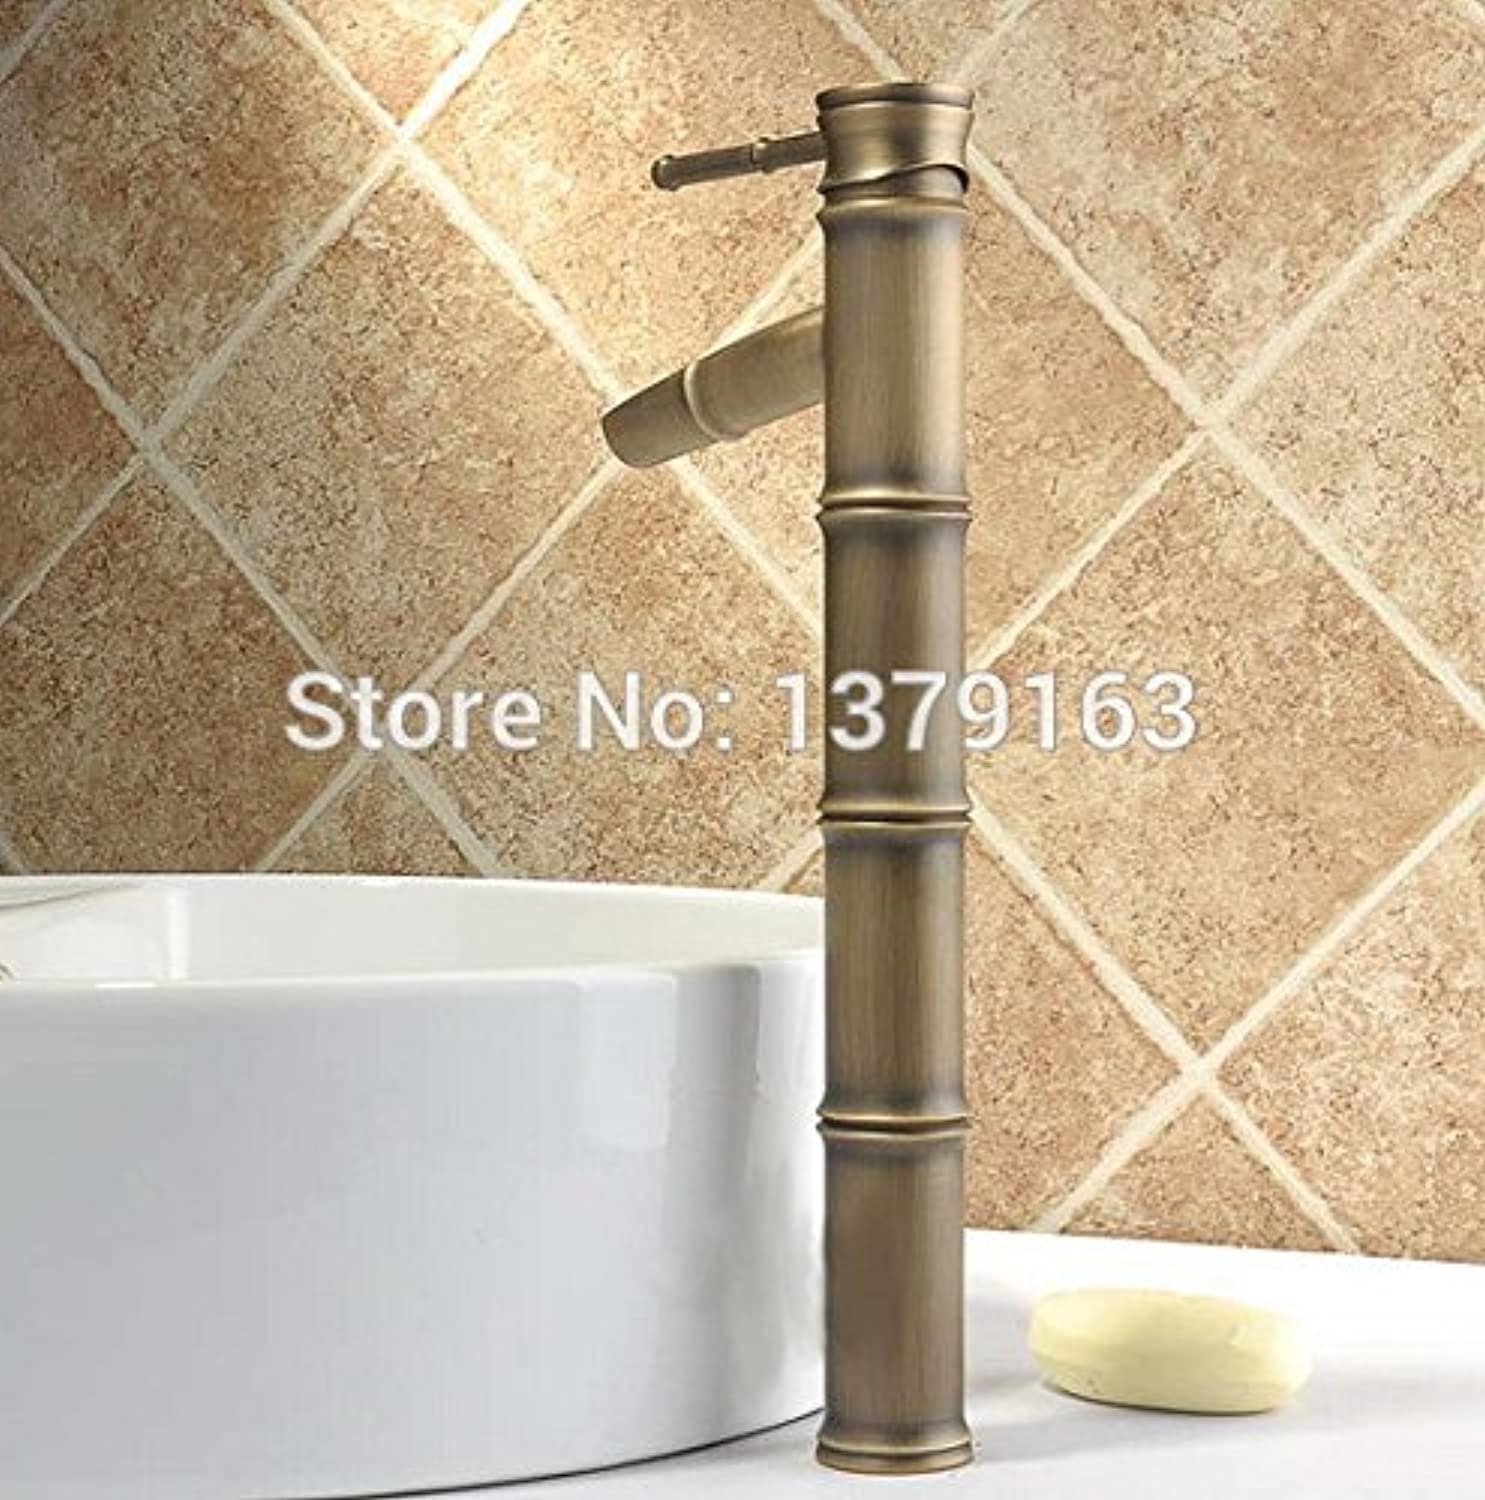 Maifeini The Tall Antique Brass Bamboo Shapes Single Processing Bathroom Basin Series Mixer Tap?,?Brass